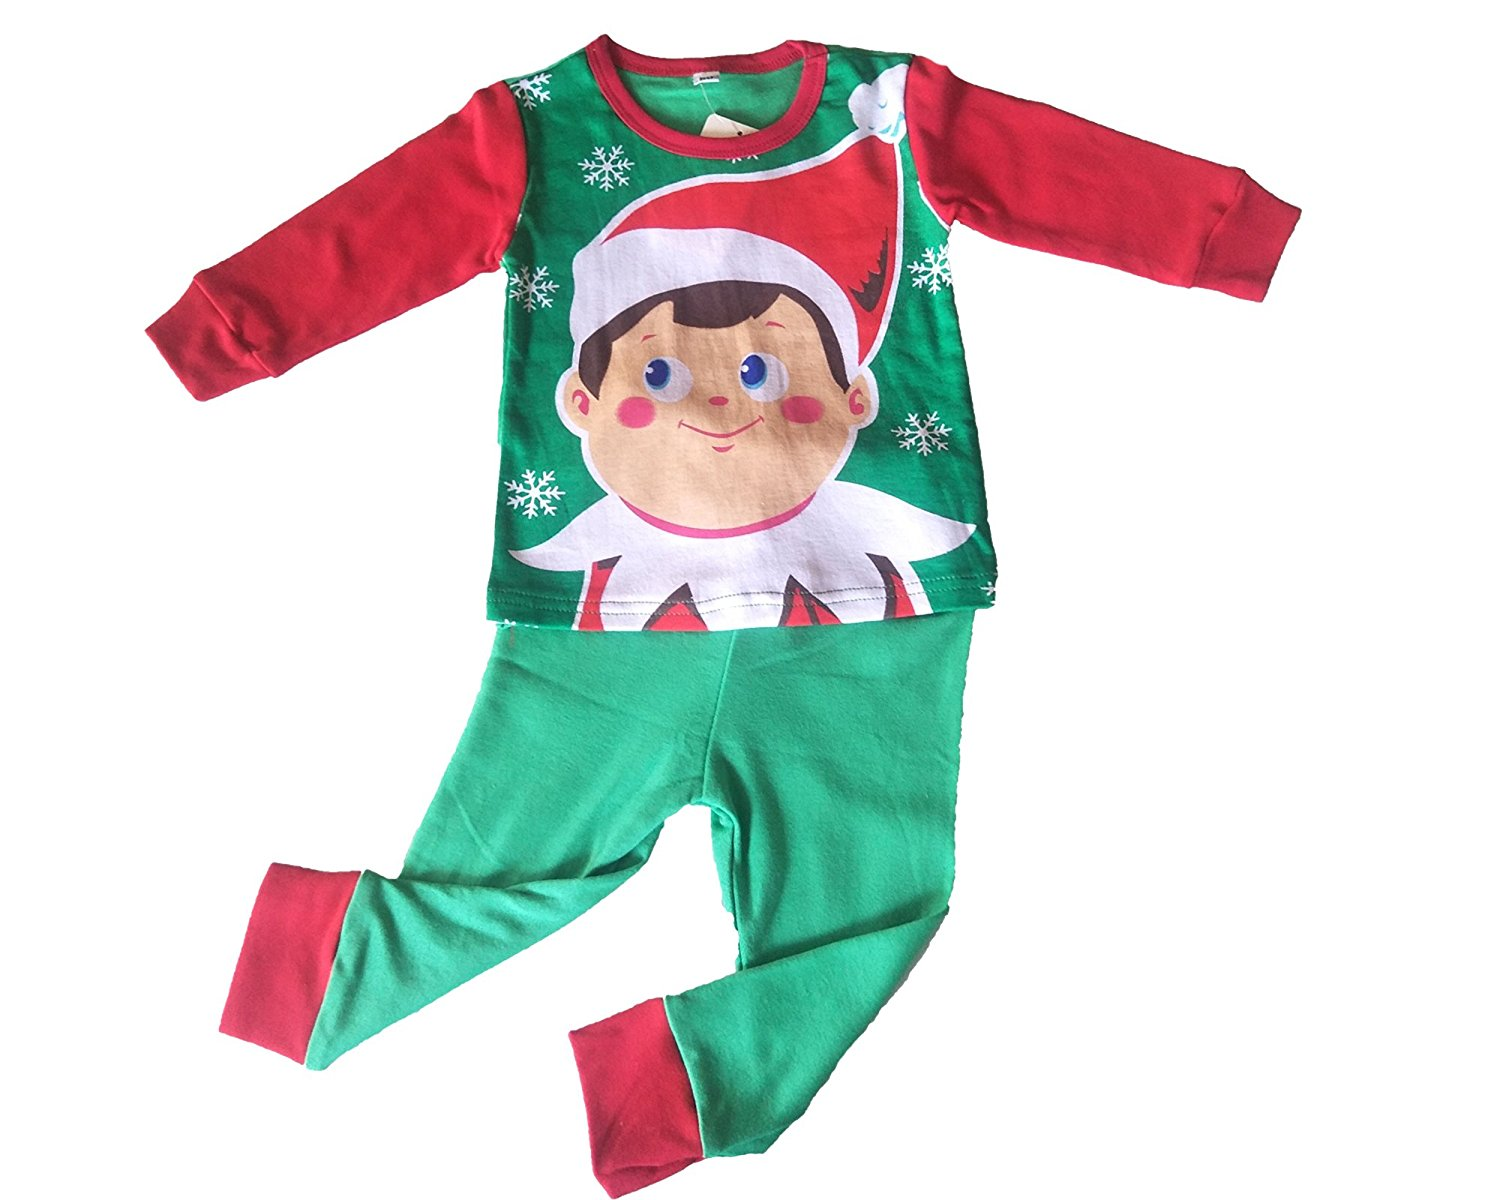 5186080bef Christmas Santa Claus Little Boys Girls  Pajamas Sets 100% Cotton Clothes  Toddler Kid Sleepwear